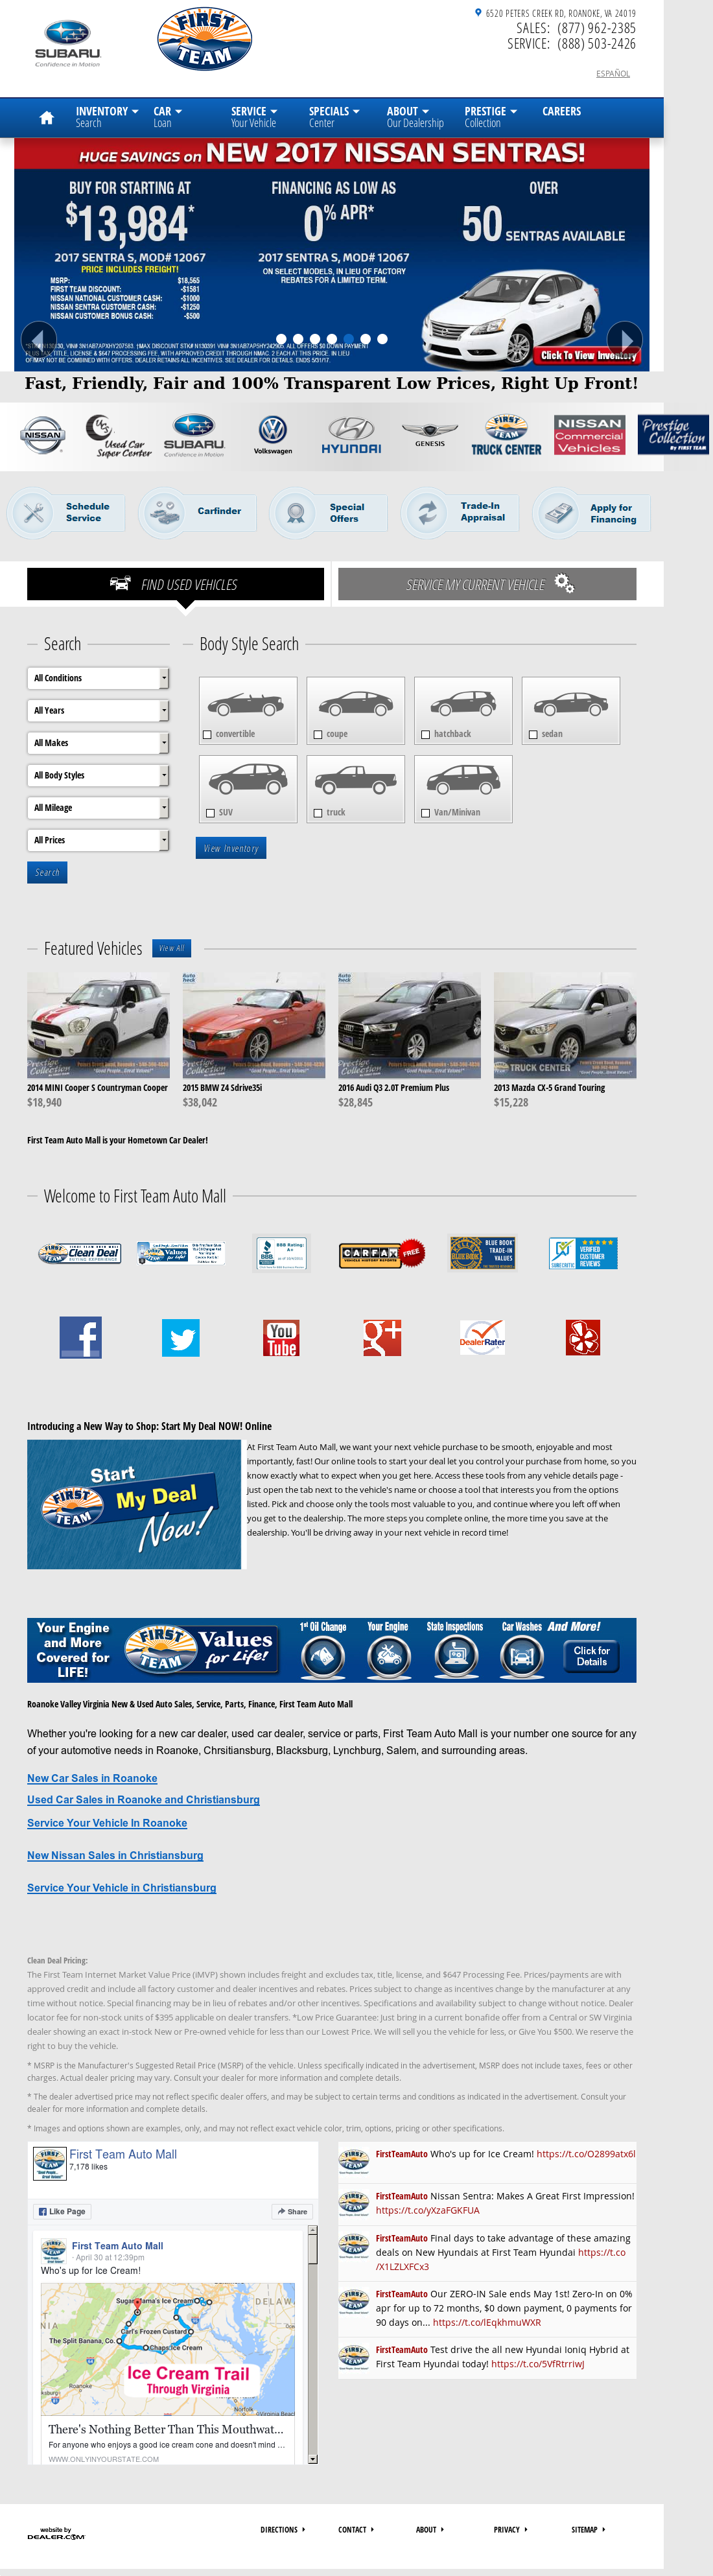 First Team Auto Mall Hyundai petitors Revenue and Employees